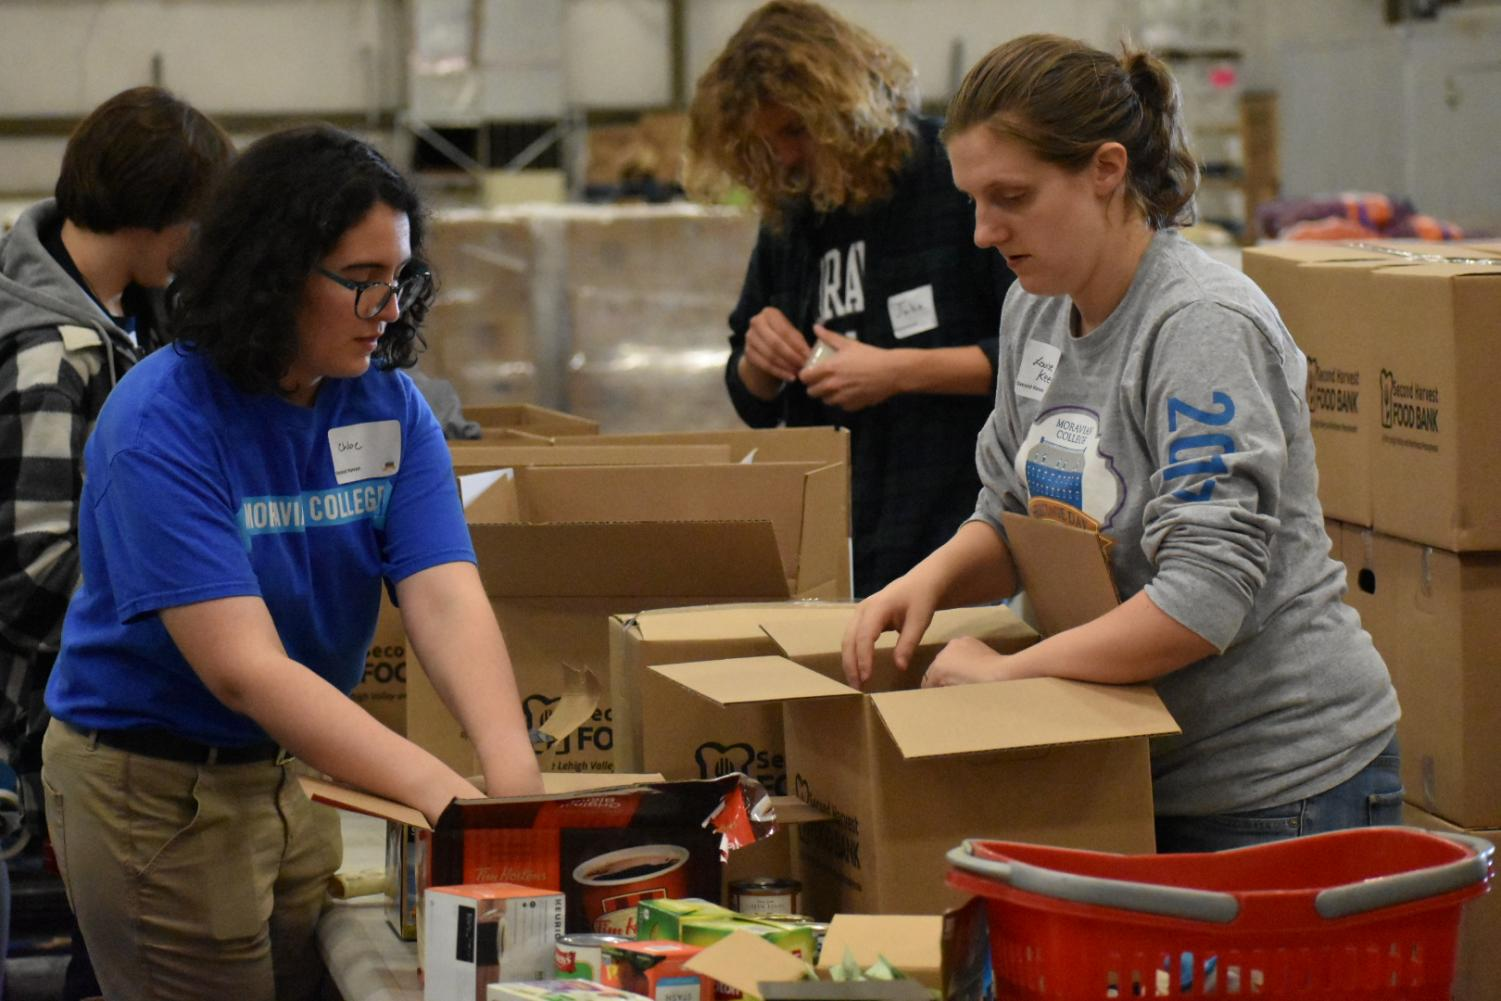 Moravian College students and faculty came together to organize food for Second Harvest Food Pantry.